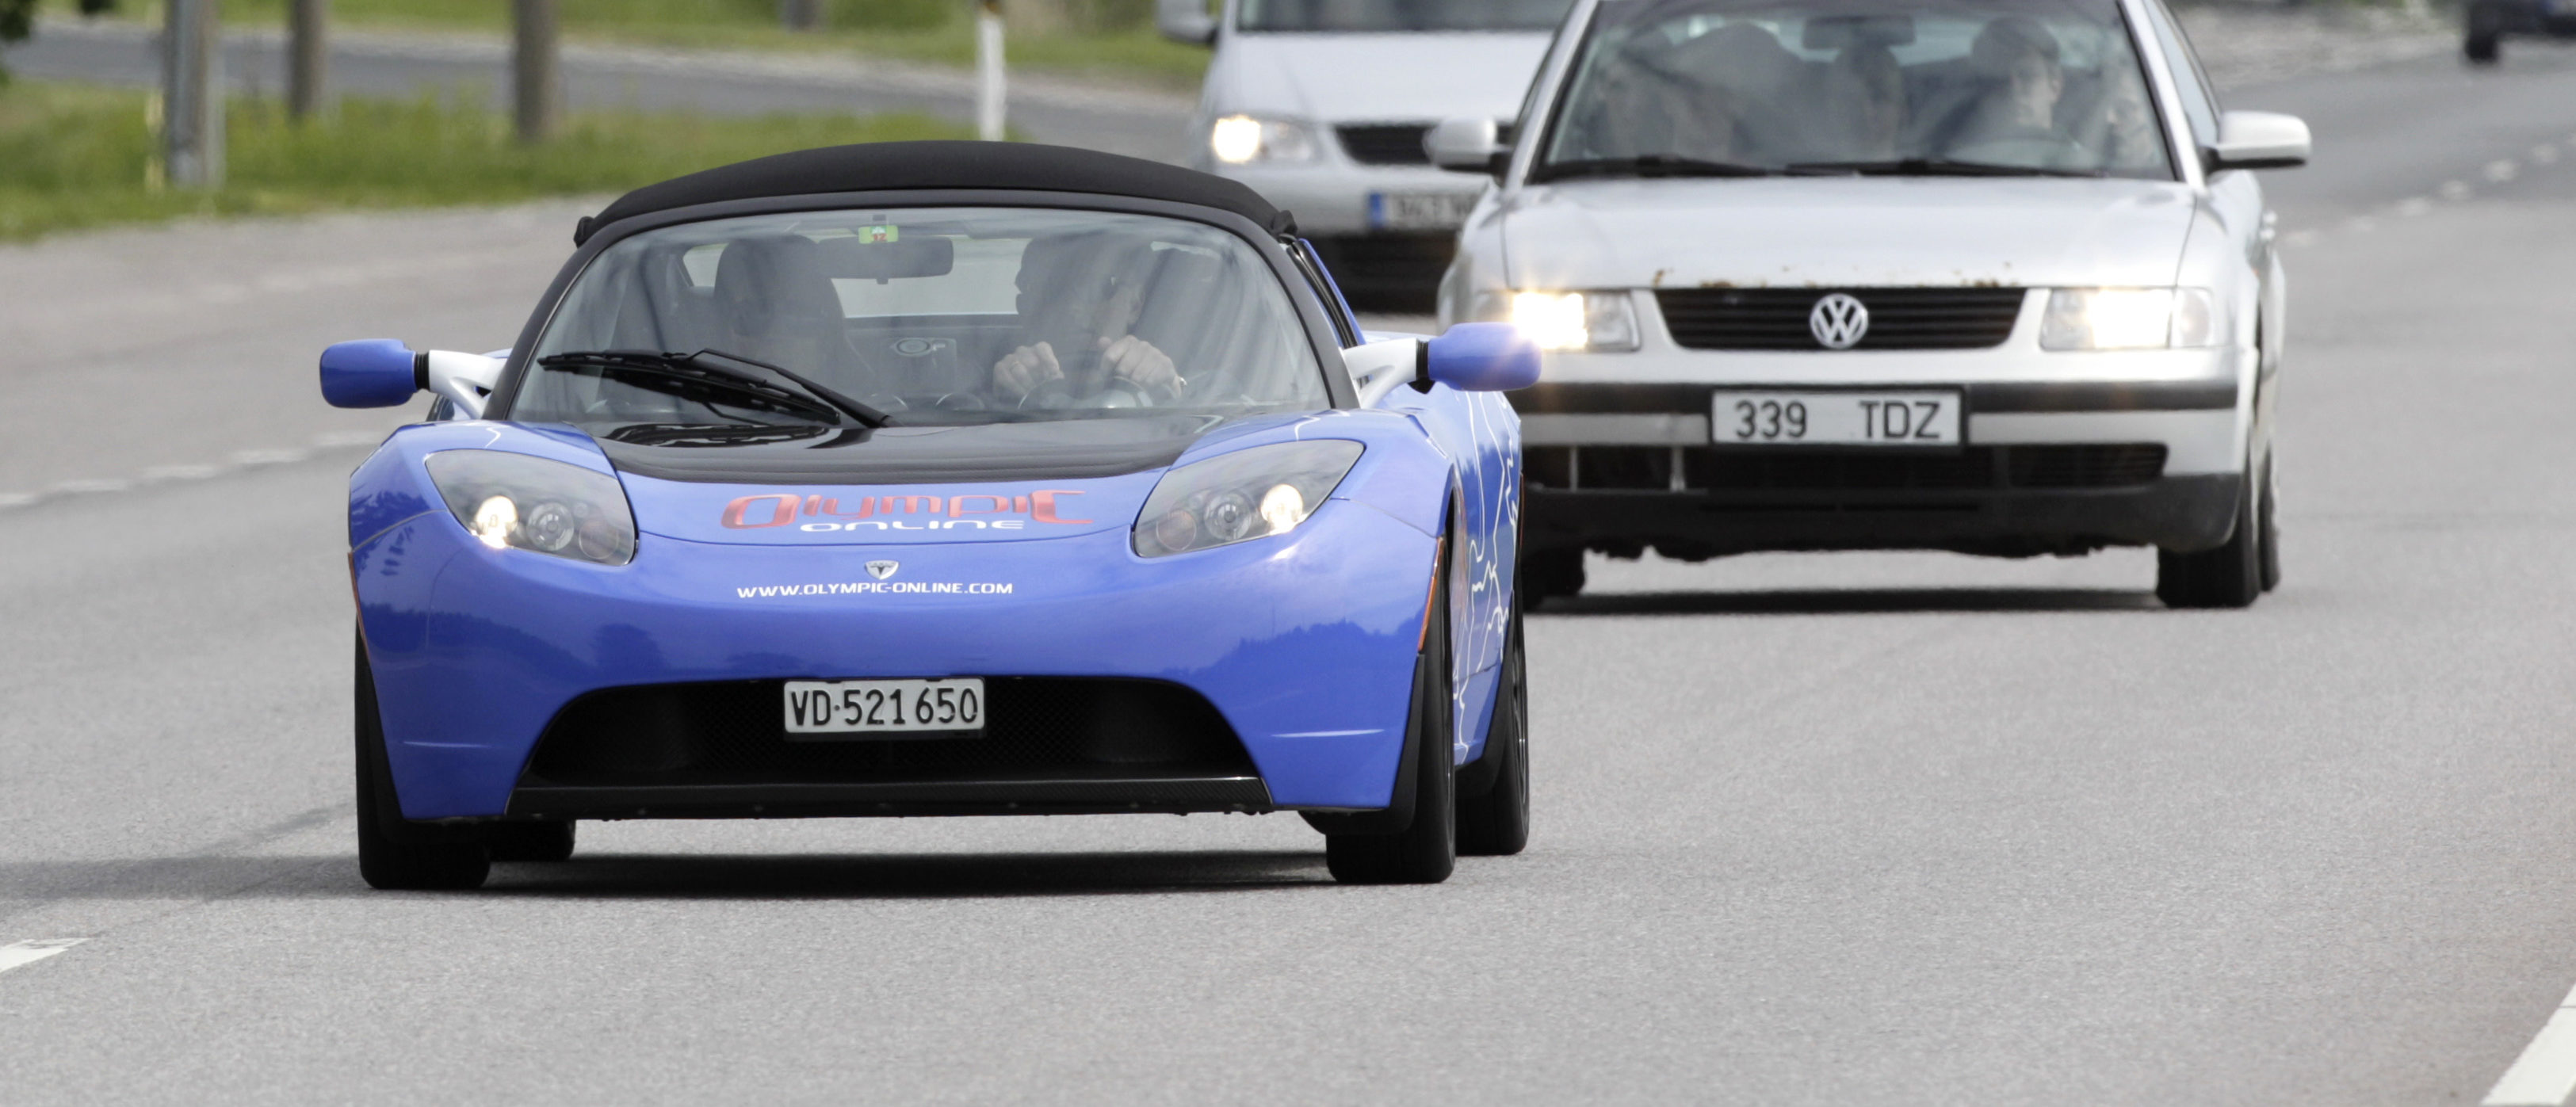 A Tesla Roadster runs on a road during an electric car rally from Tallinn to Monte-Carlo, near Tallinn June 1, 2012. The rally lasts for 10 days, during which electric cars will cross 10 countries and cover a distance of more than 3300 km (2050 miles). According to Tesla, the Roadster has a 302 hp (225 kW) electric engine and can cover more than 390 km (245 miles) per charge. REUTERS/Ints Kalnins (ESTONIA - Tags: TRANSPORT ENVIRONMENT) - GM2E862017K01